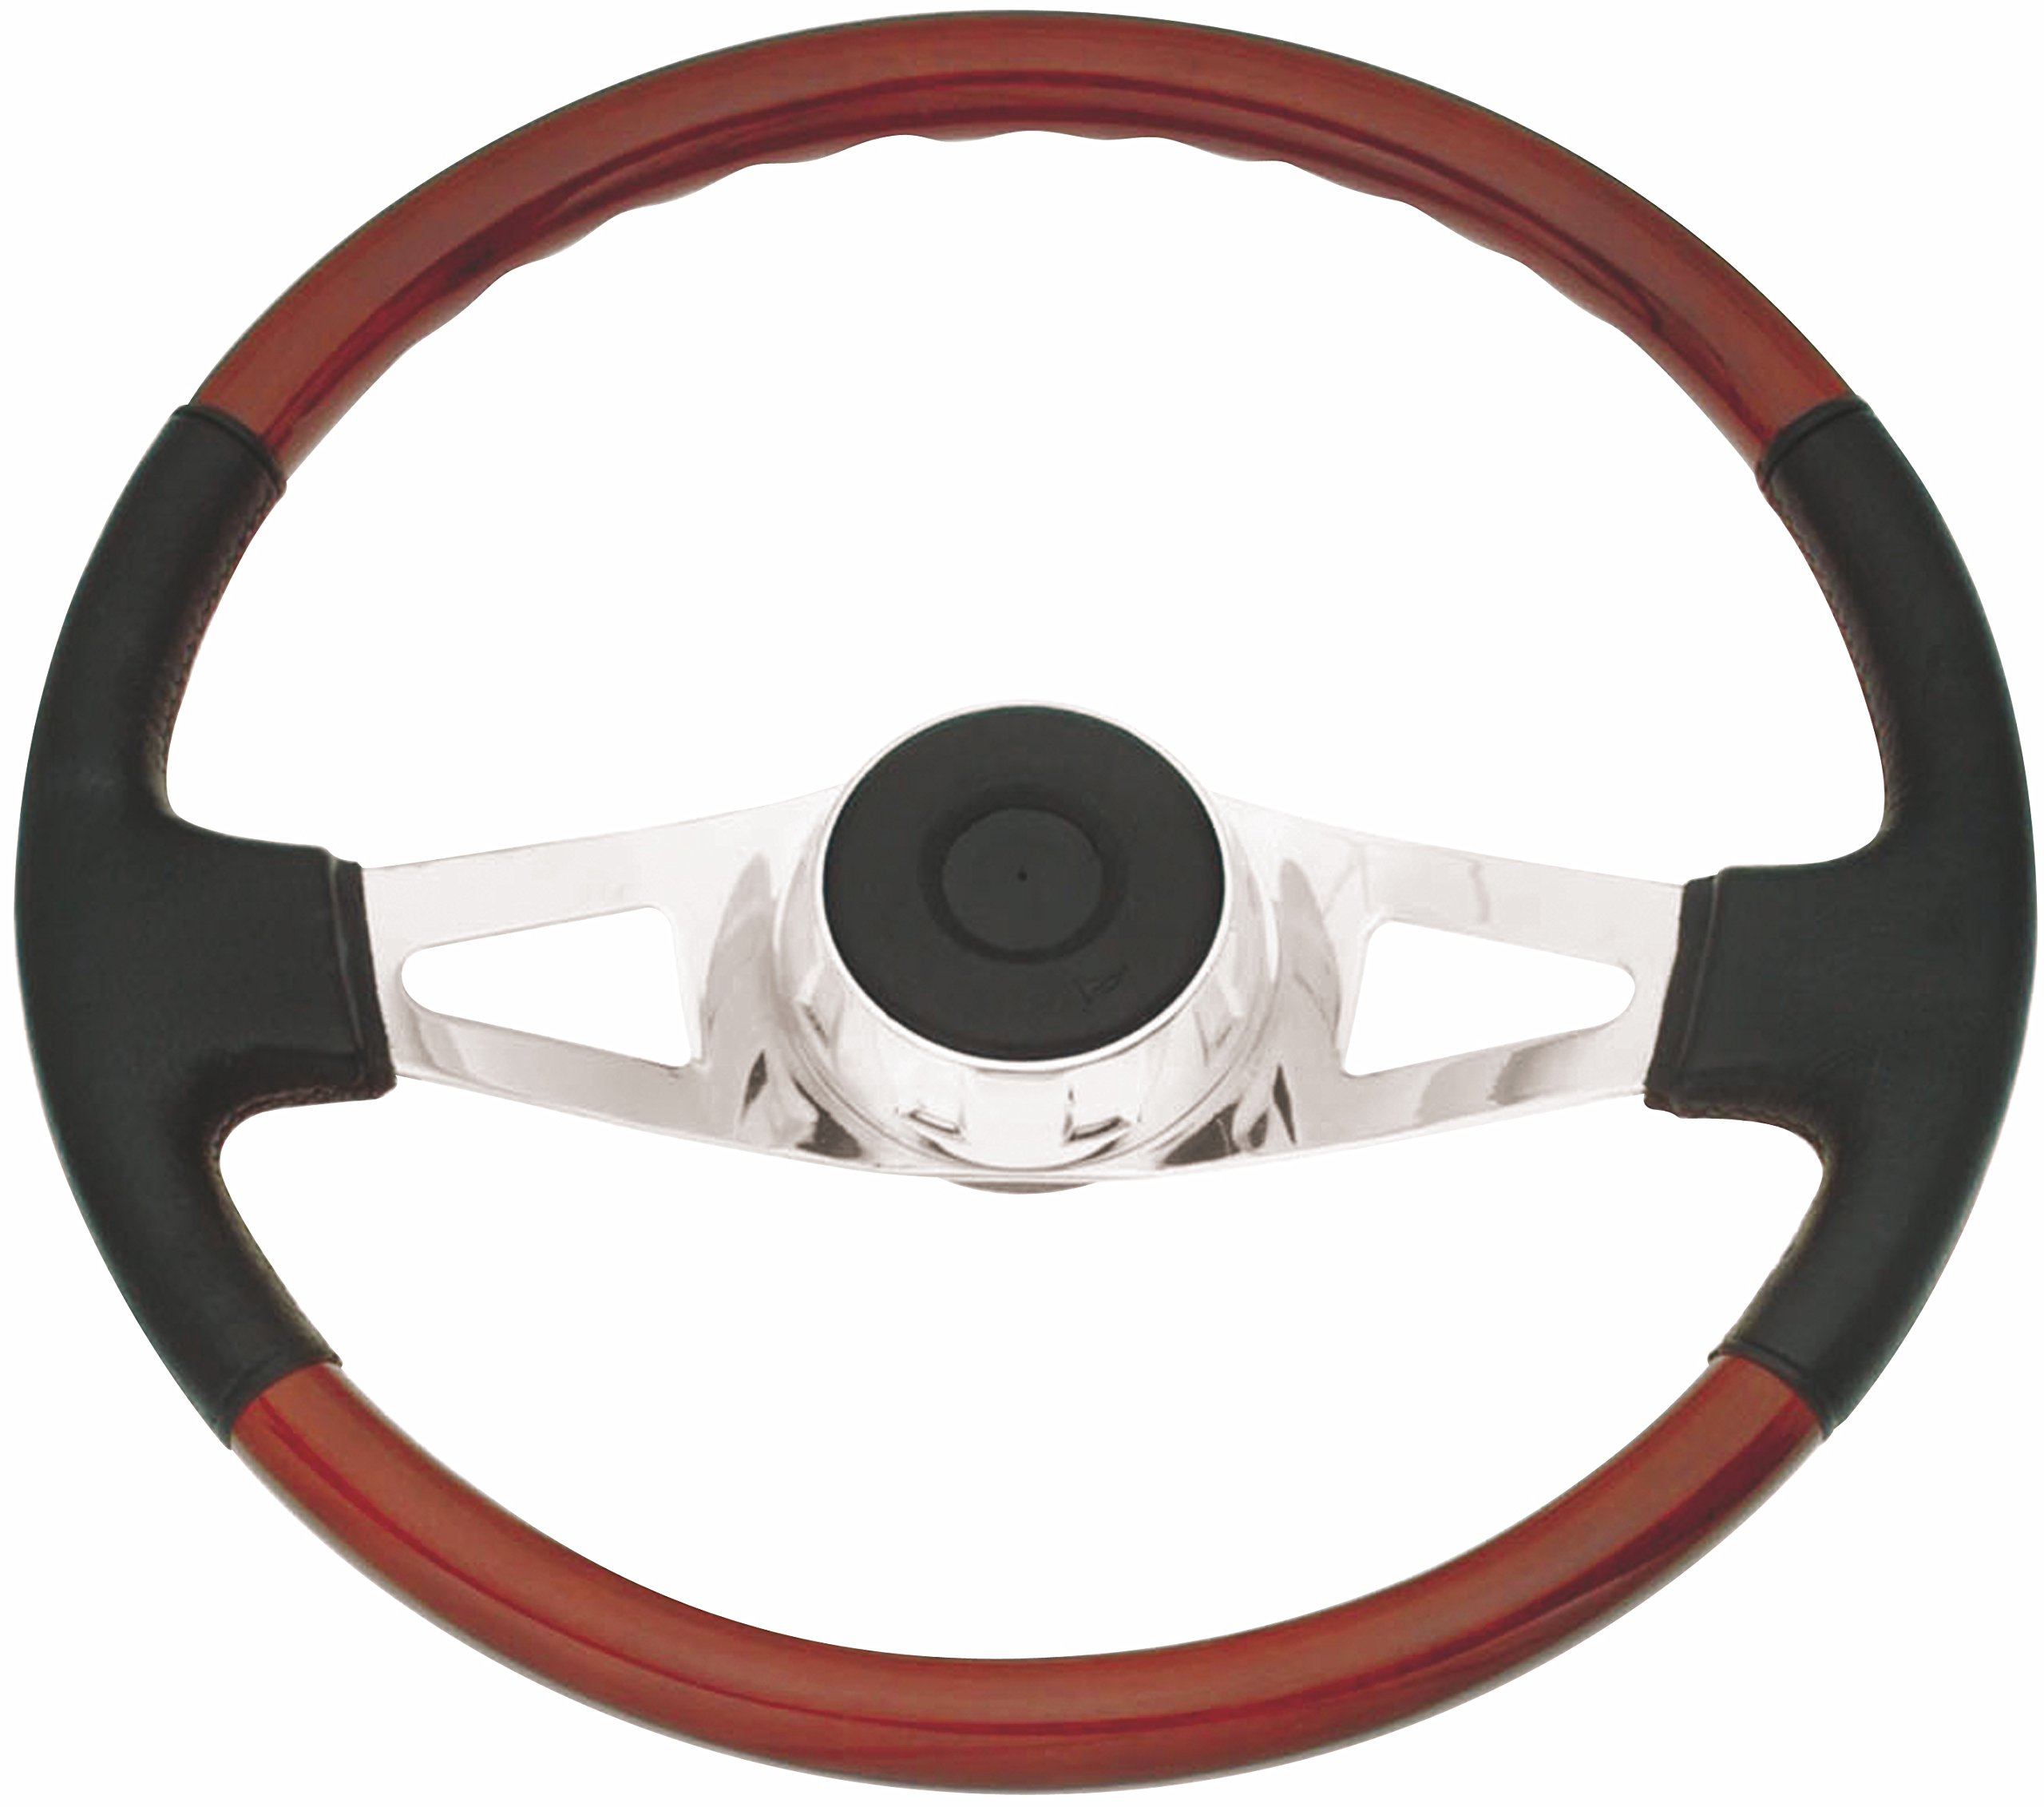 Woody's WP-SWF8901L.2 Rosewood Chrome Truck Steering Wheel (Beautiful African Hardwood) by Woody's